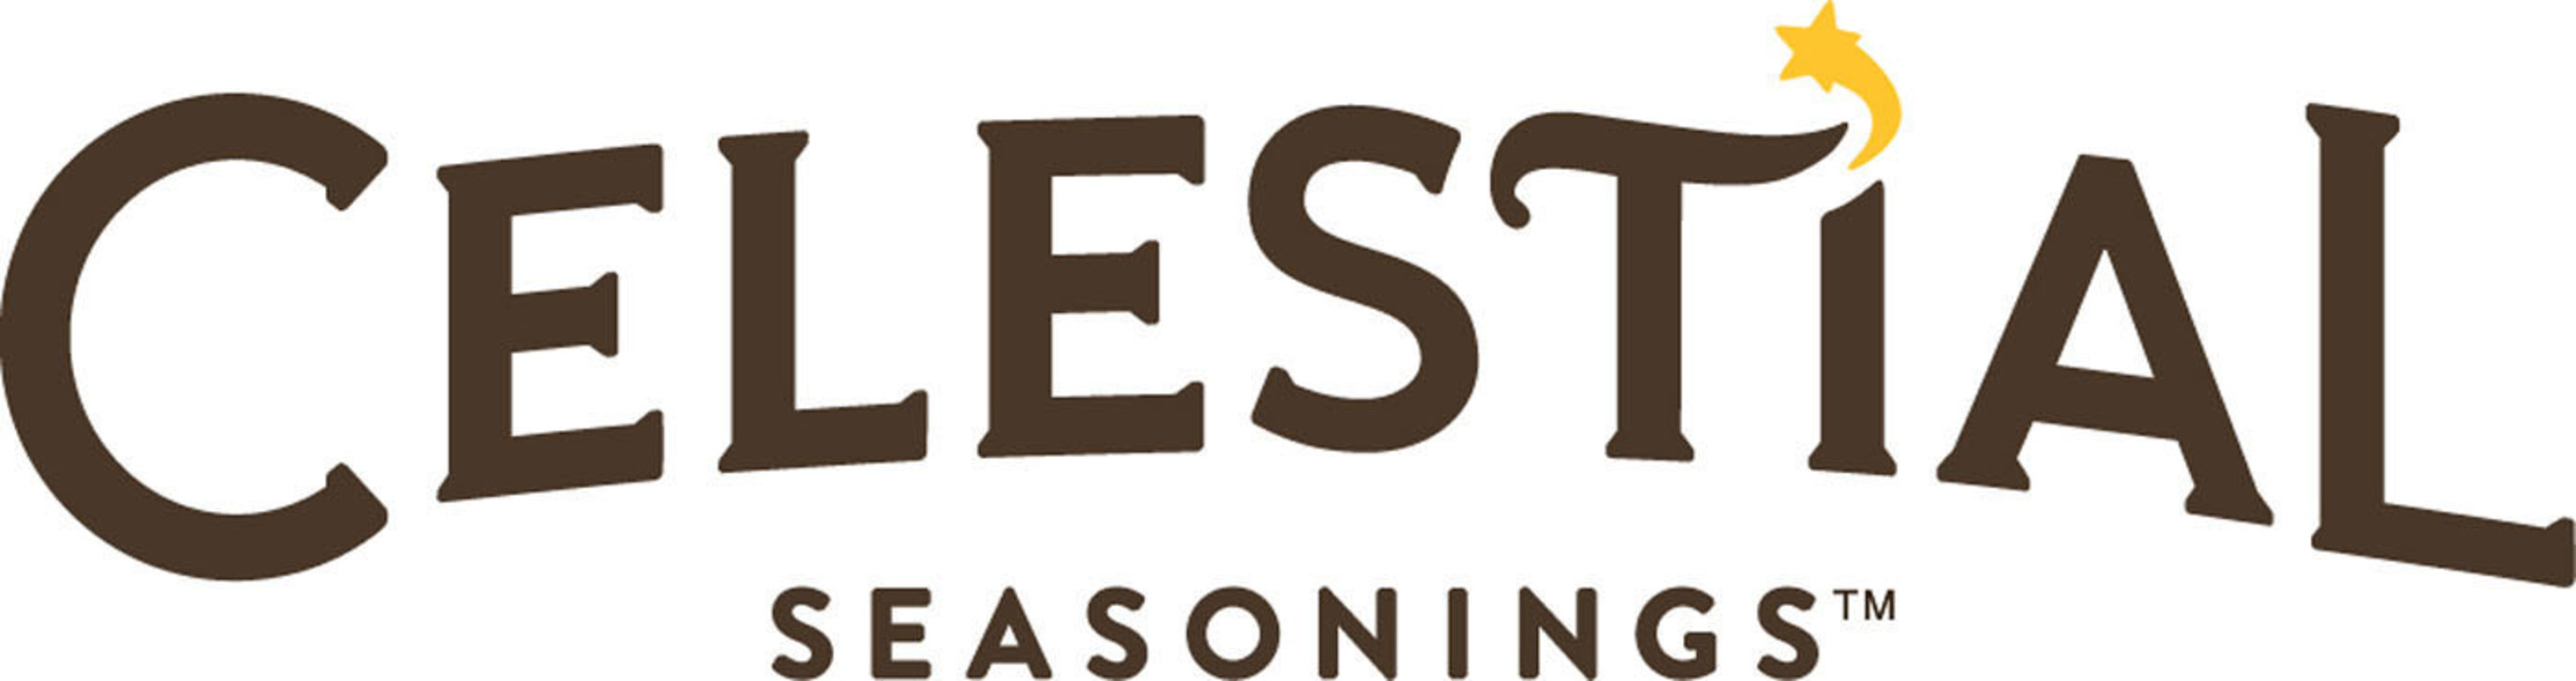 Celestial Seasonings(R) New Logo